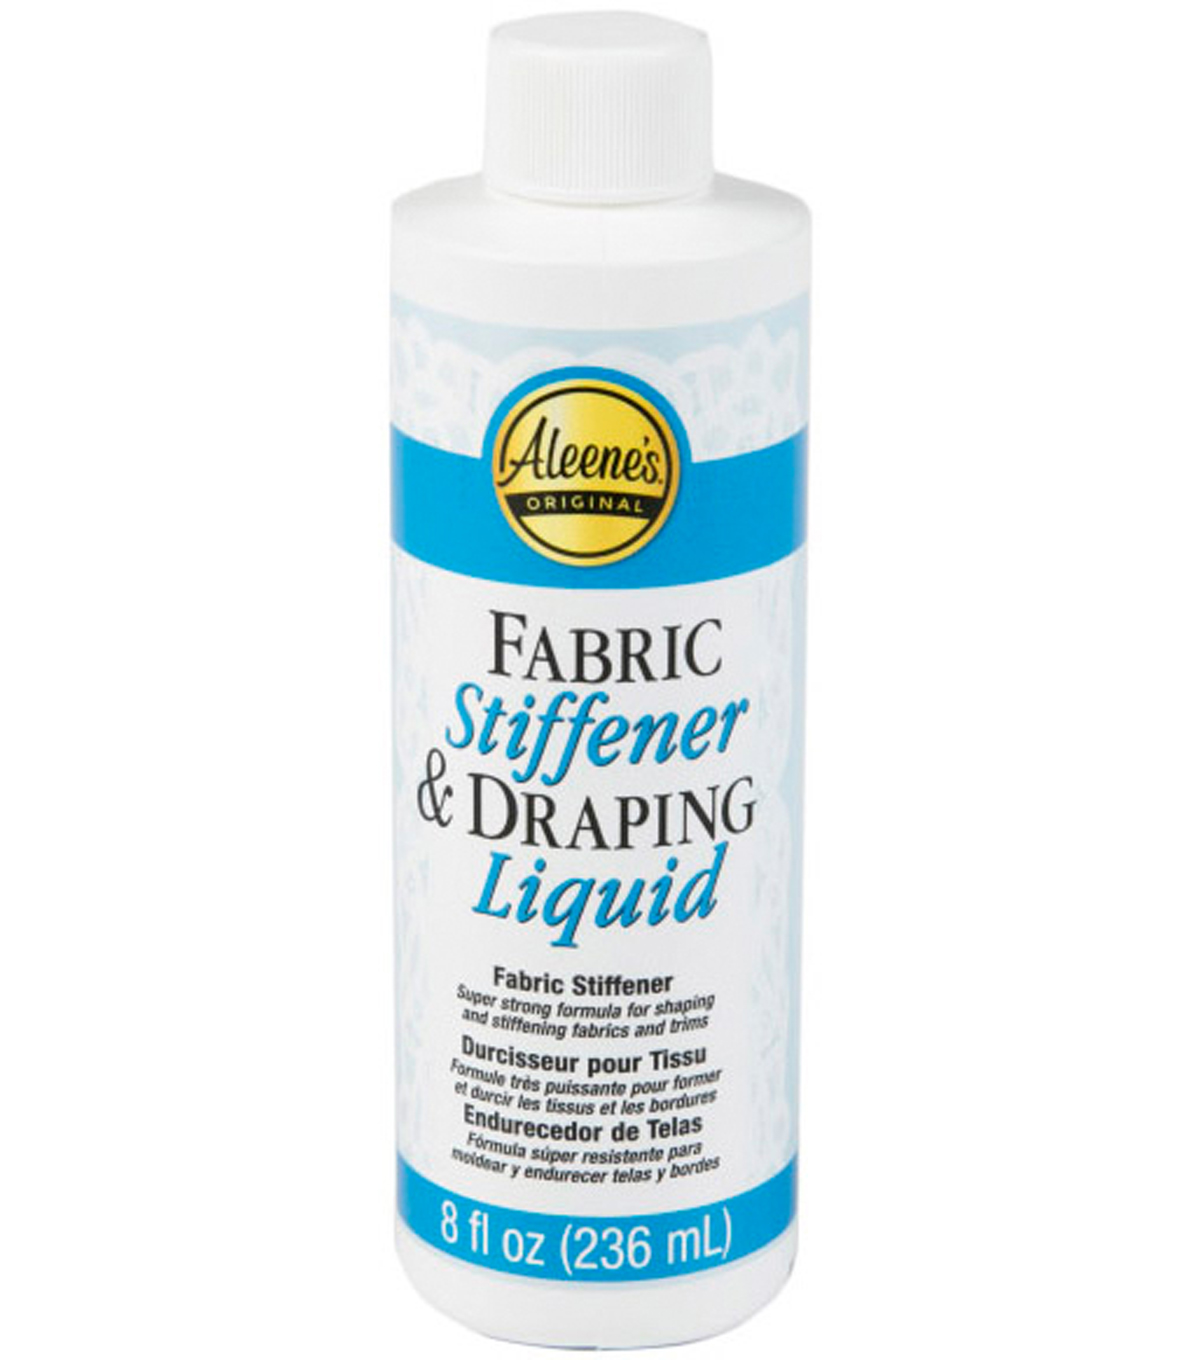 Aleene\u0027s Fabric Stiffener & Draping Liquid-8 oz.